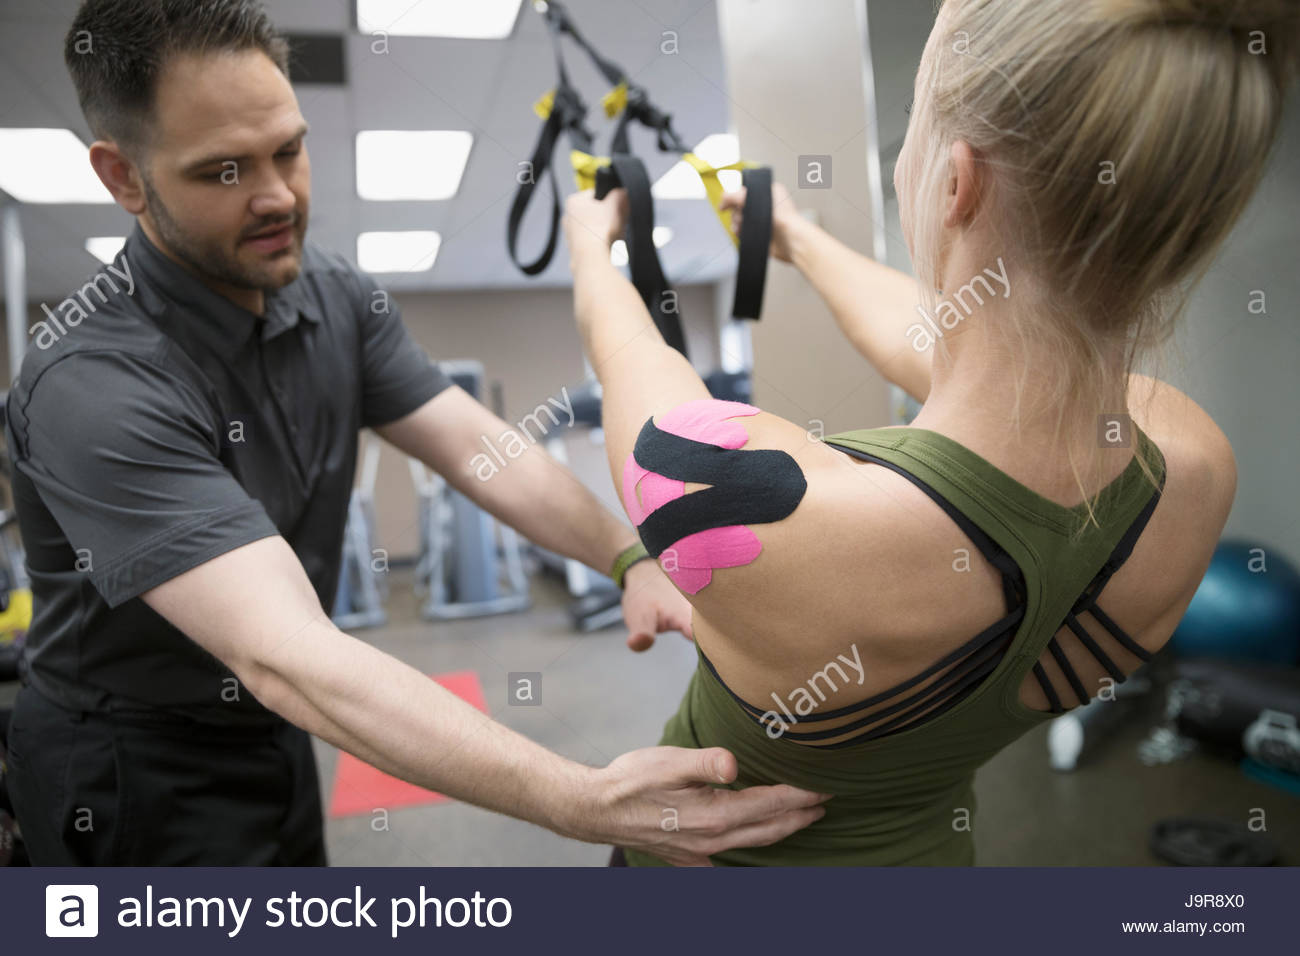 Personal Trainer Working Client Holding Stock Photos -6267